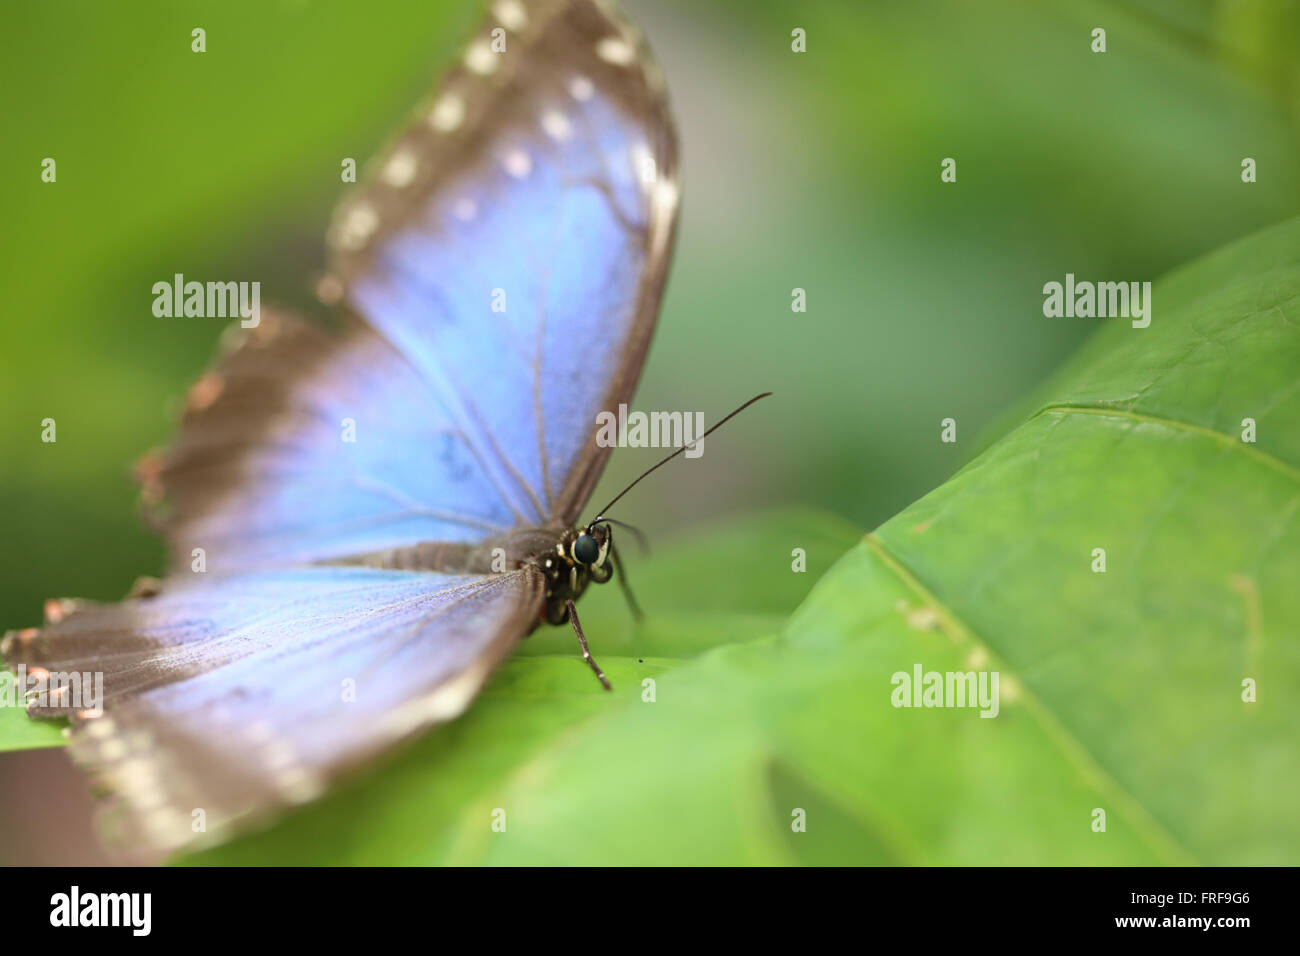 Blue Morpho Butterfly. - Stock Image